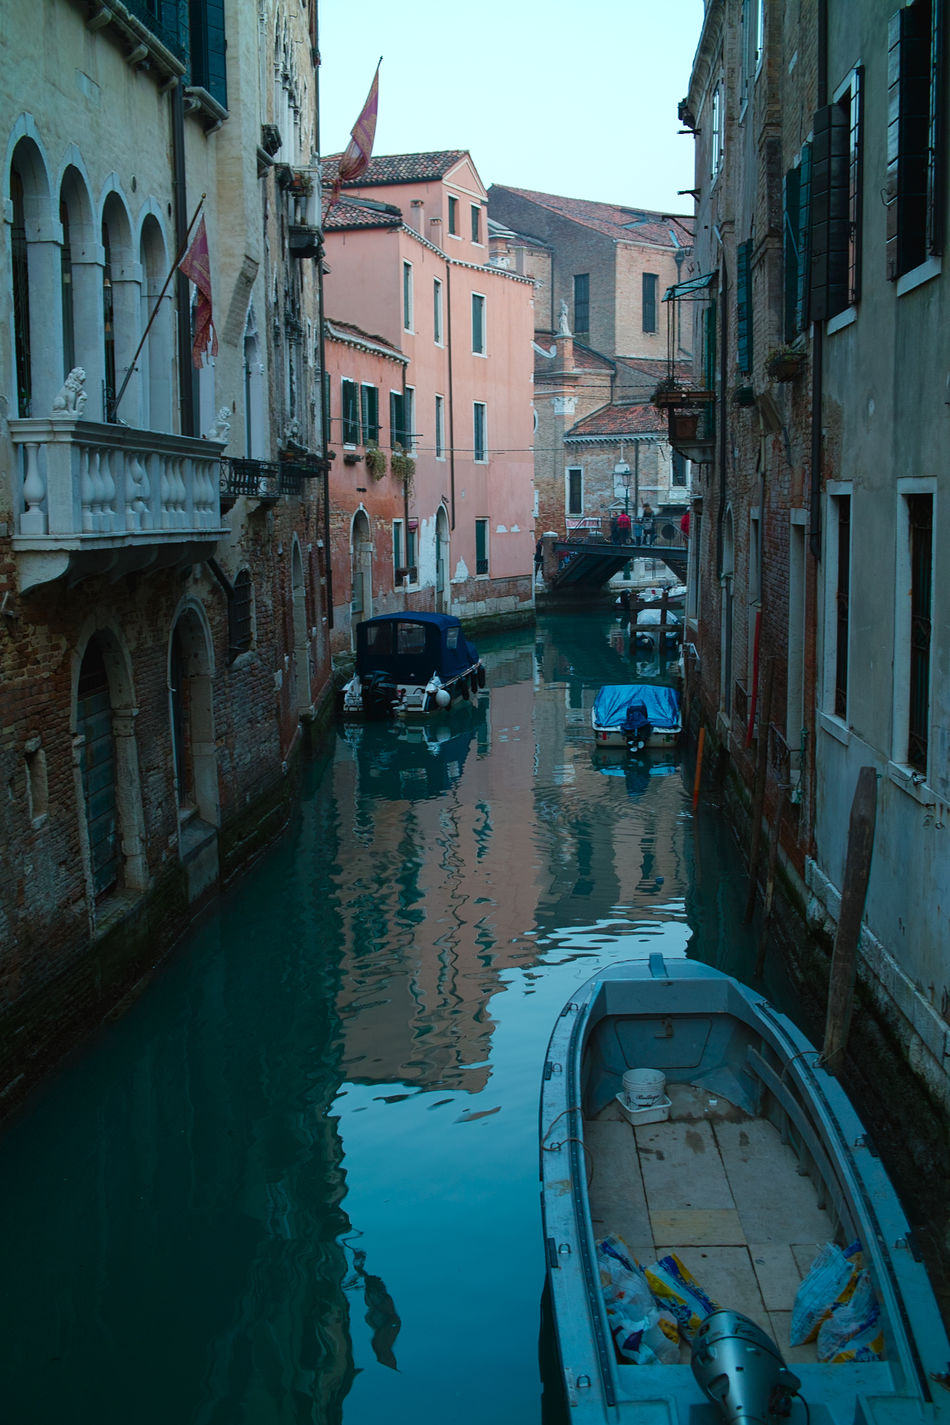 Canal Channels Day Outdoors Transportation Travel Destinations Travel Photography Venice, Italy Water